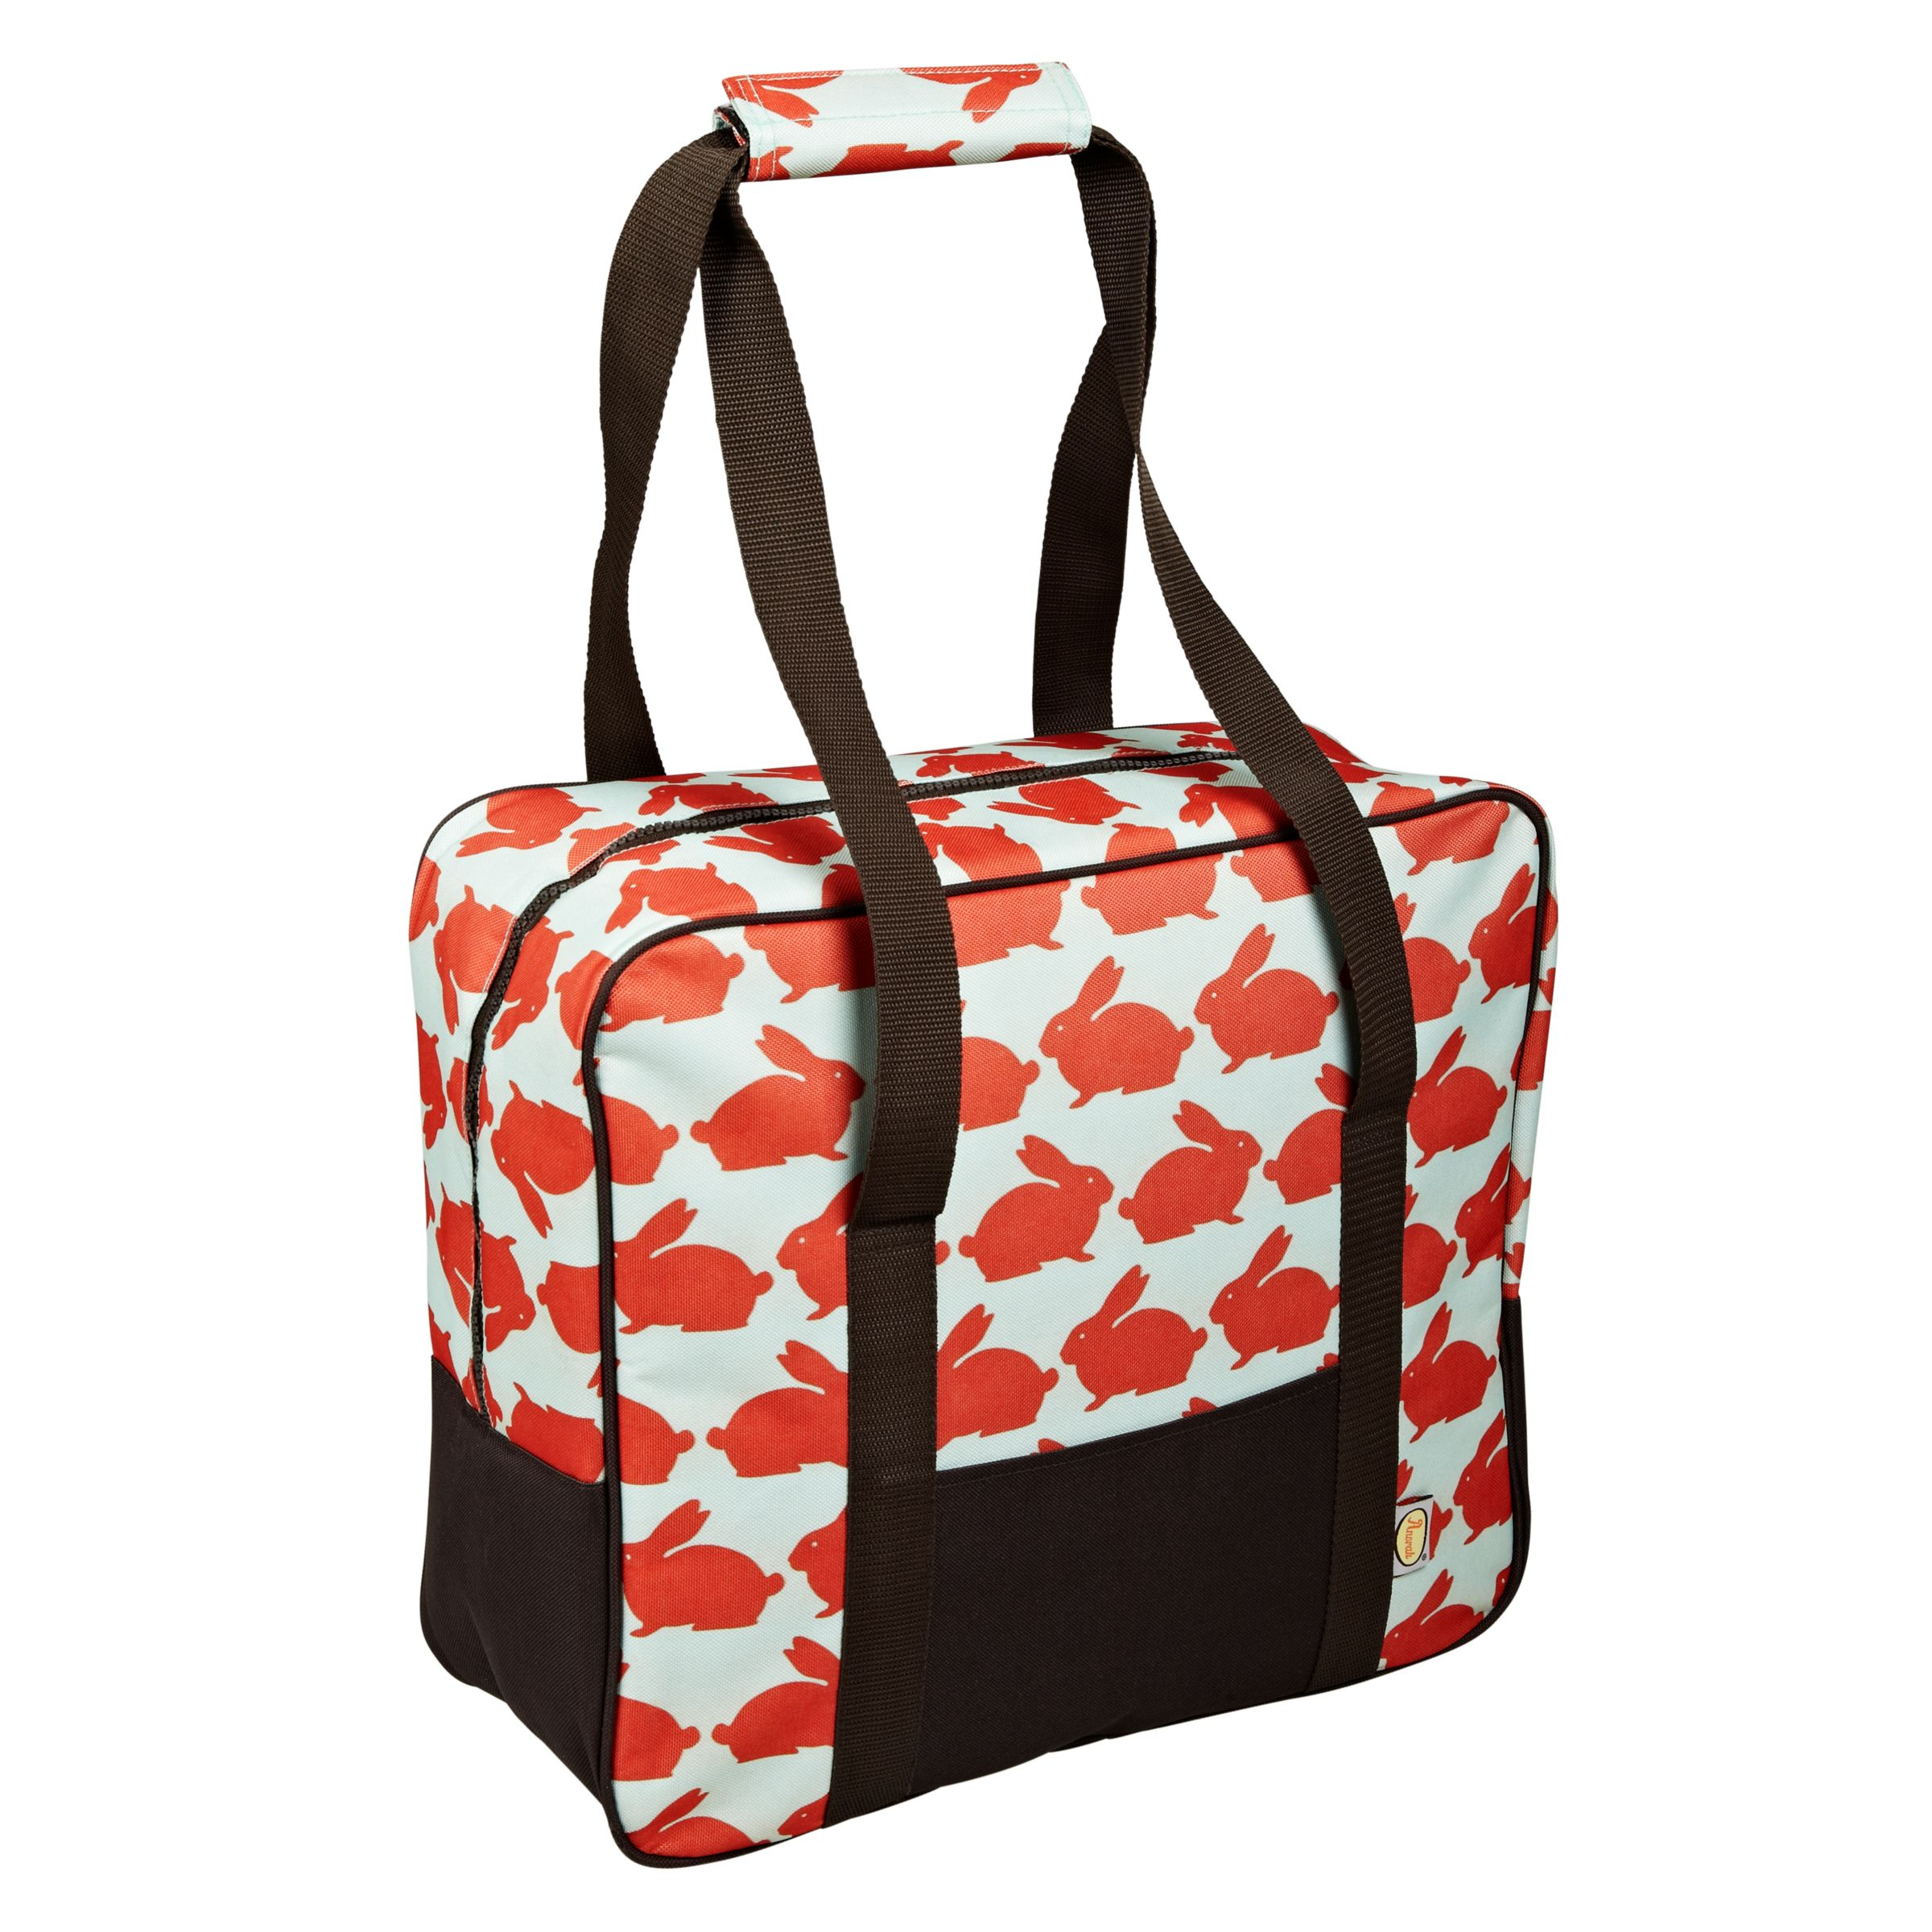 Anorak Kissing Rabbits Picnic Coolbag